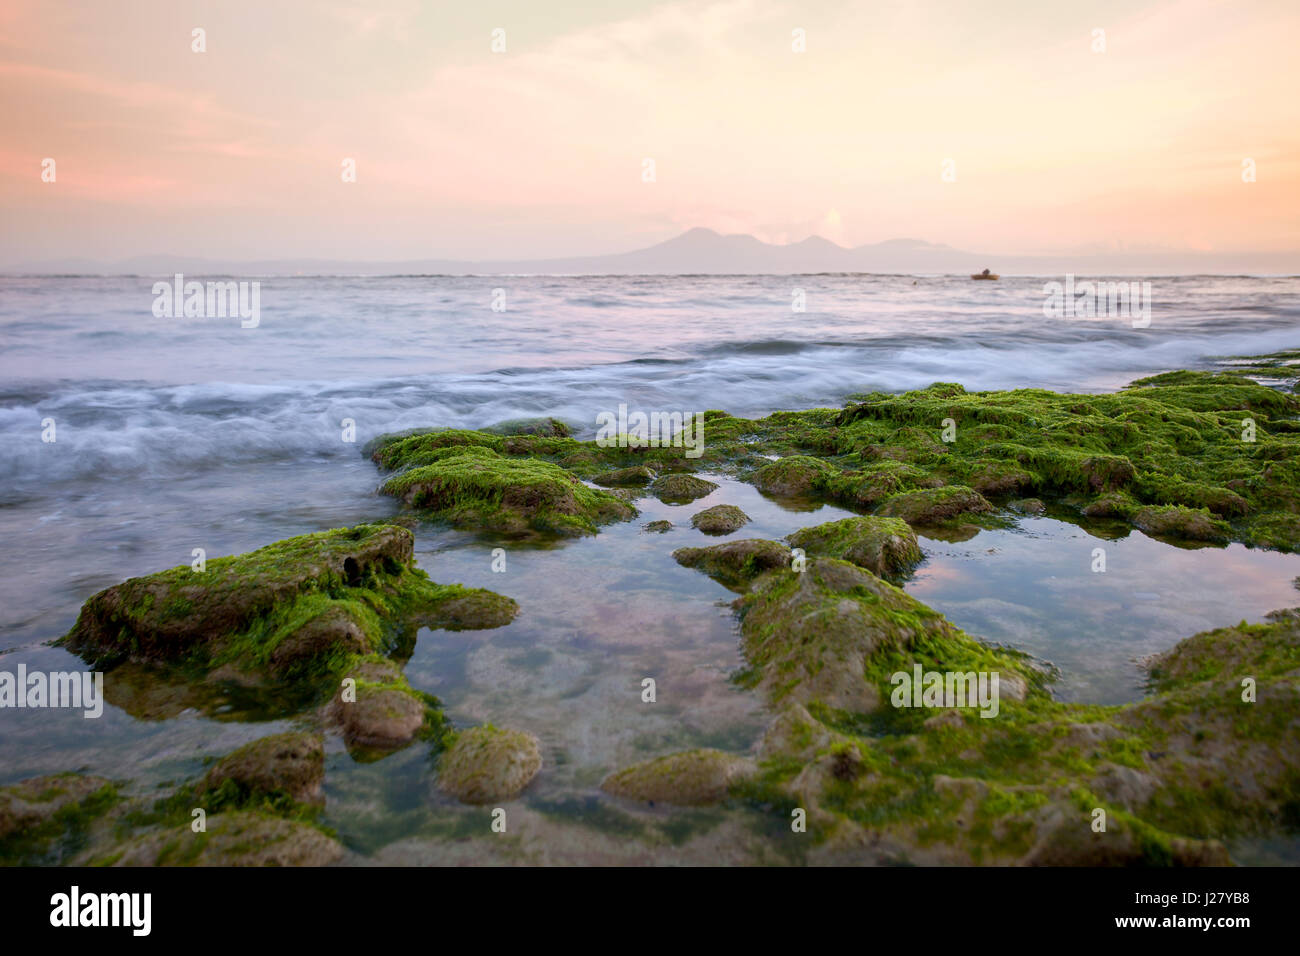 Rocky shore covered with green seaweed with the beautiful ocean in the early morning with views of the volcano and - Stock Image